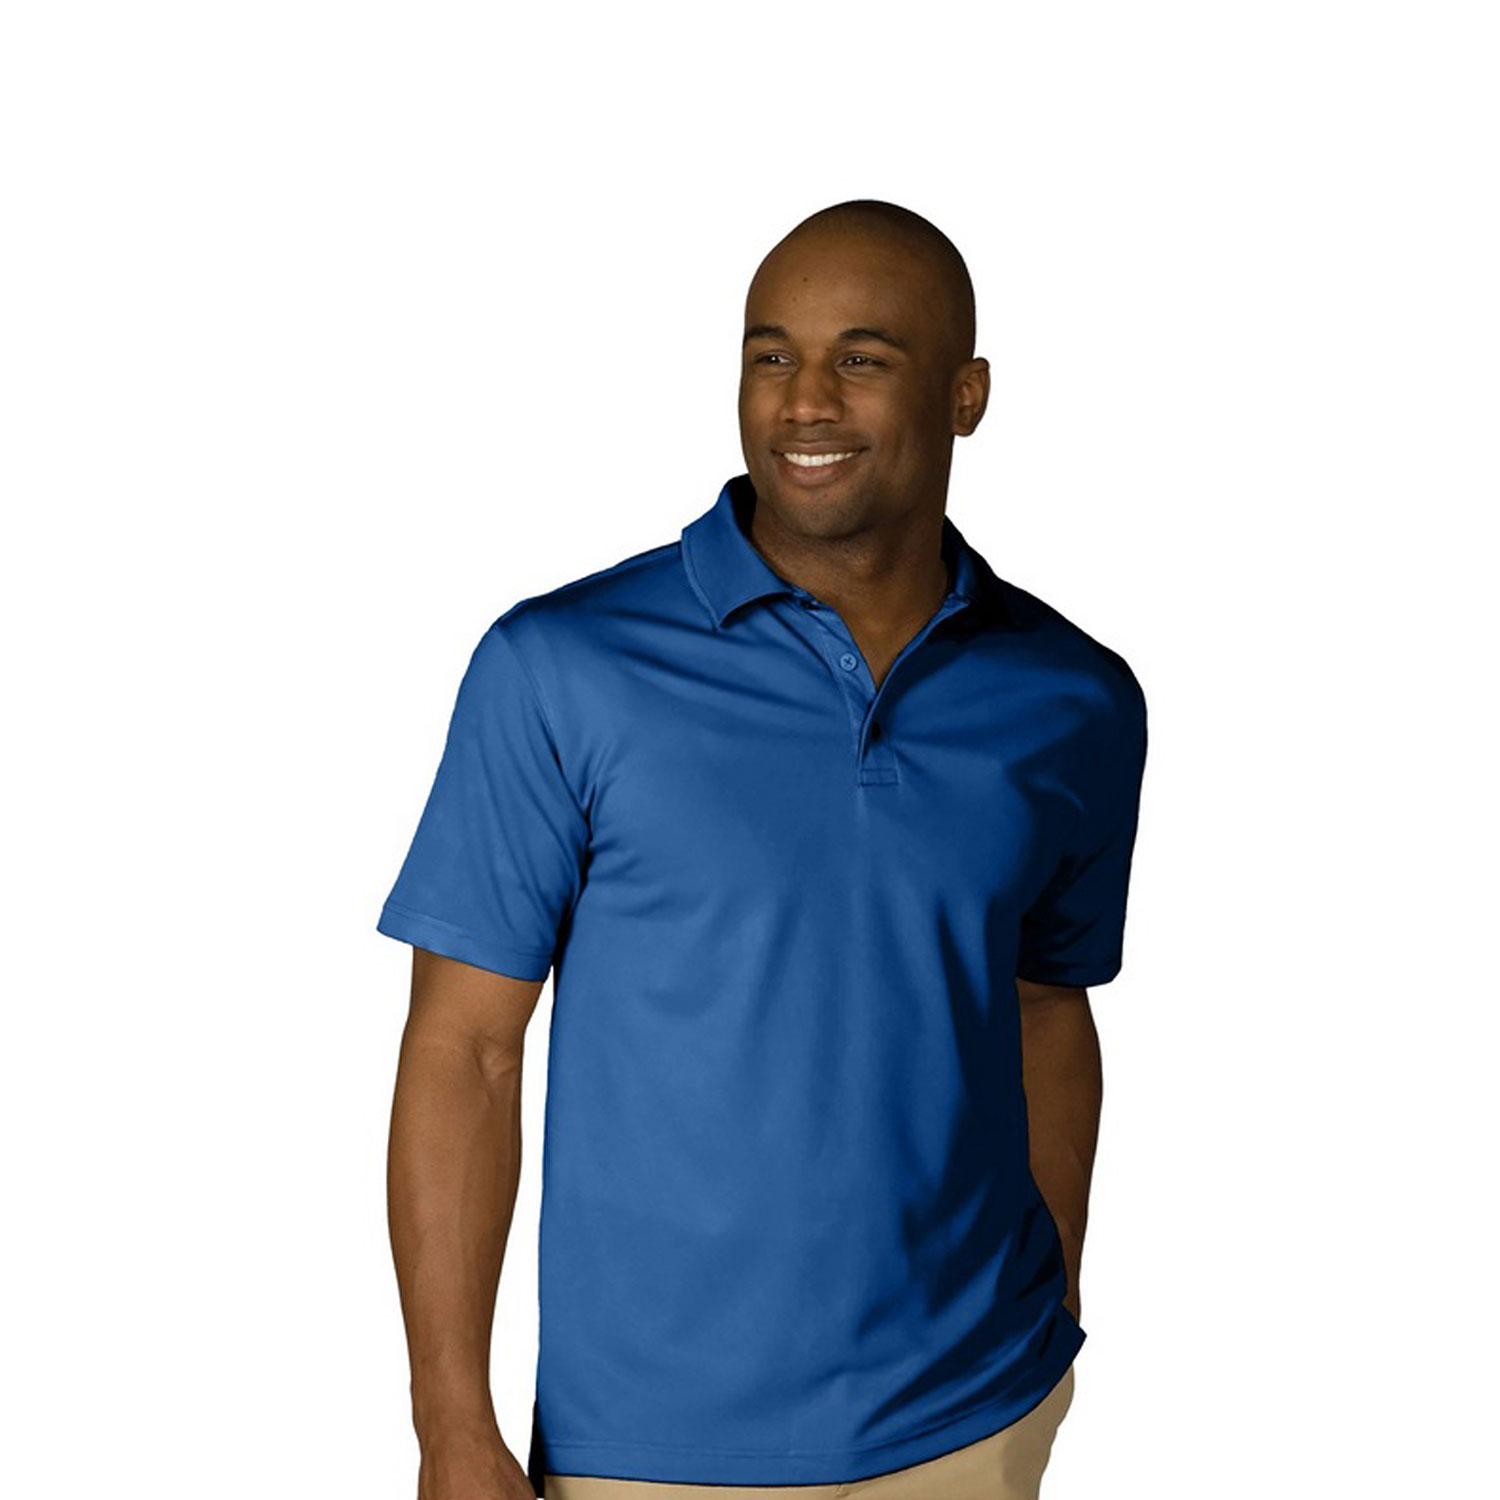 Edwards Hi-Performance Polo